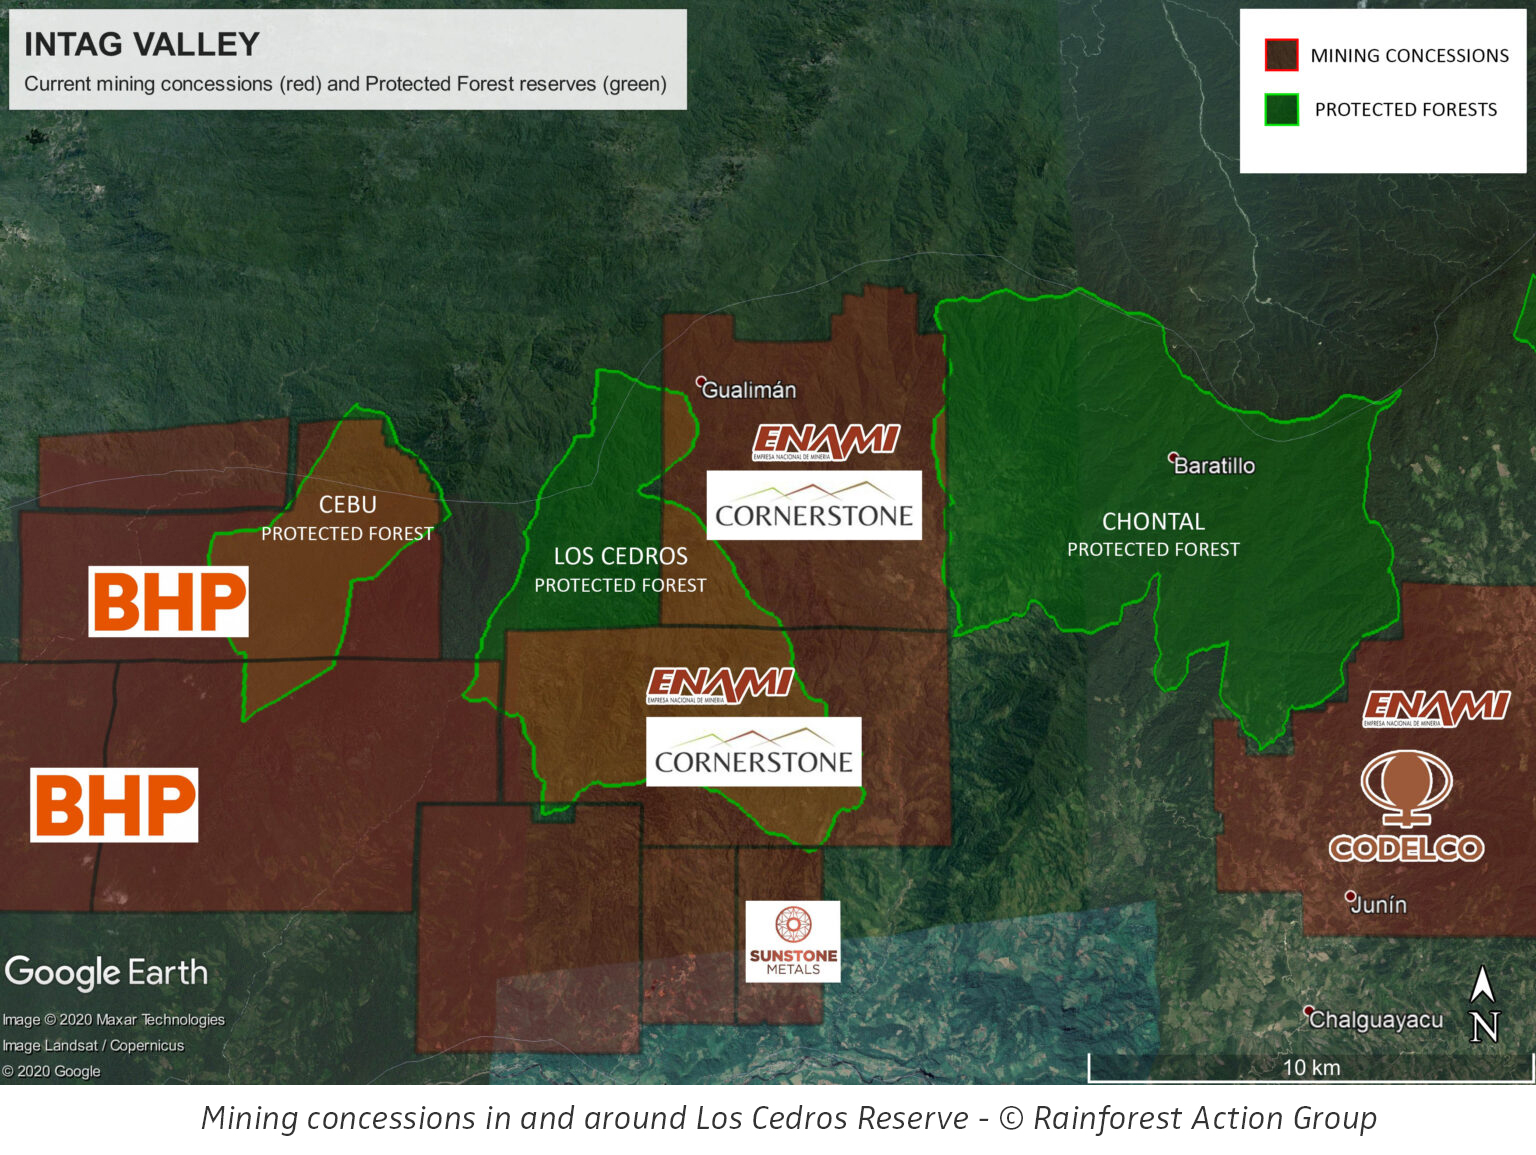 Mining concessions in and around Los Cedros Reserve